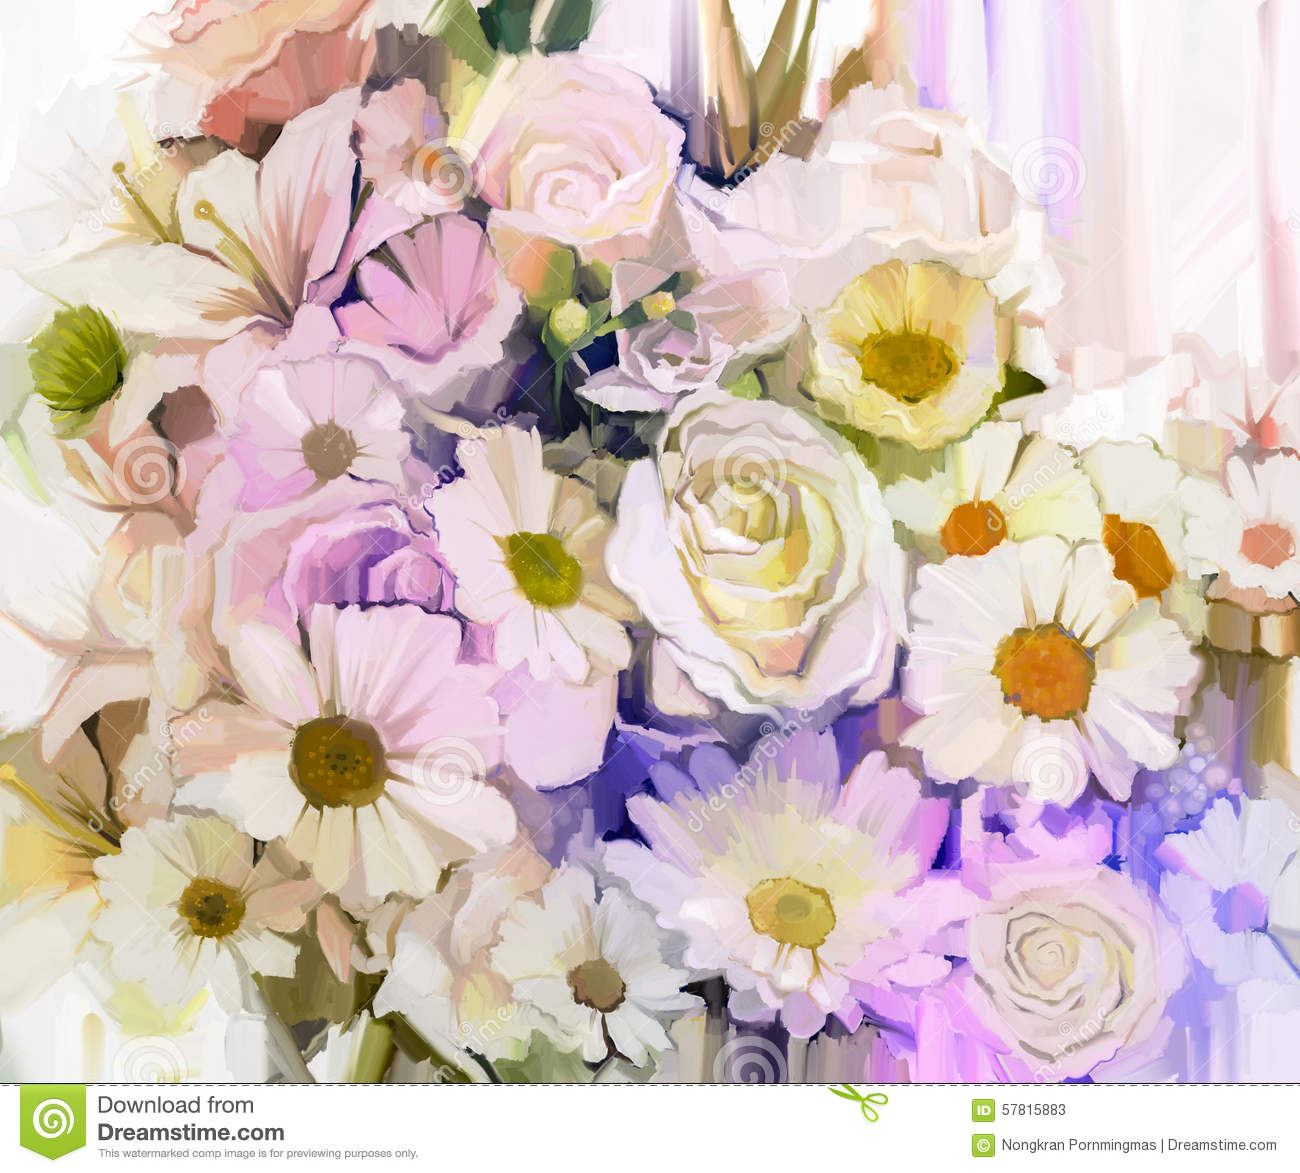 Still Life Of White Color Flowers With Soft Pink And Purple